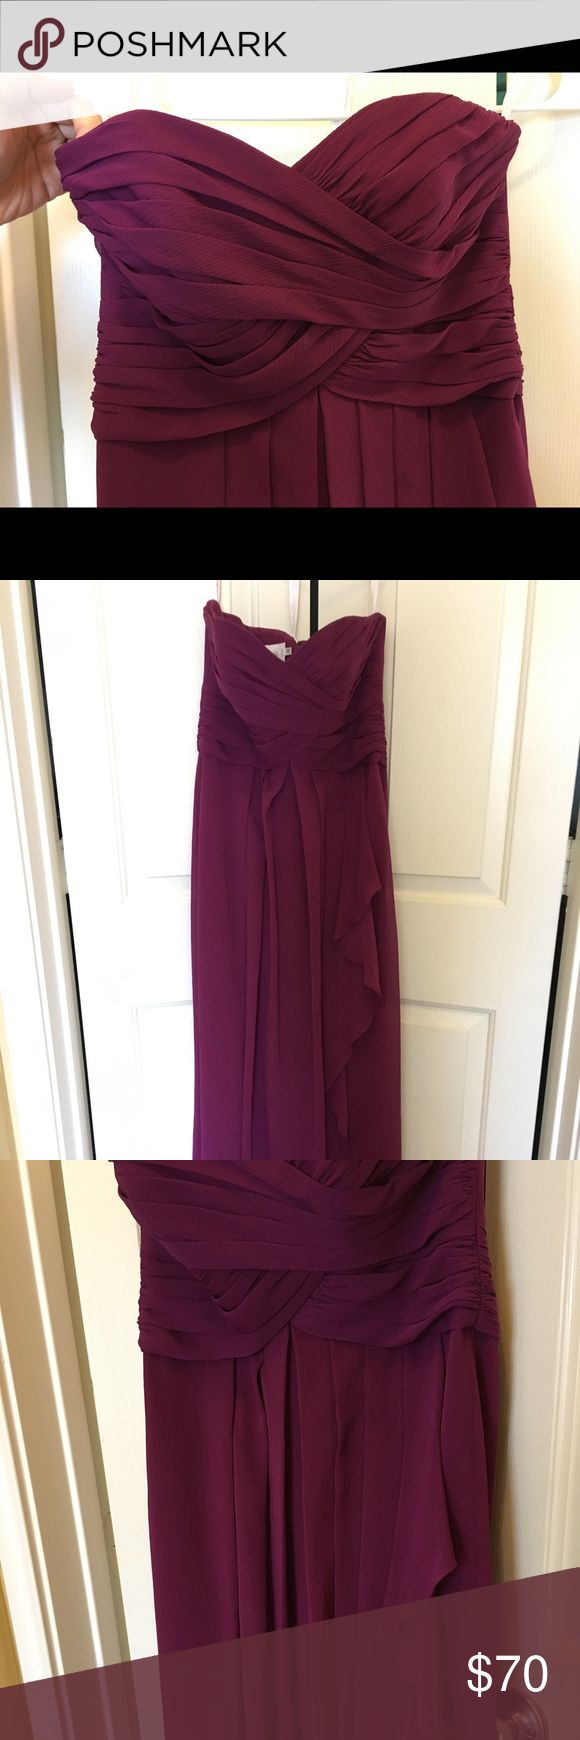 Strapless Crinkle Chiffon Dress with Cascade Skirt Worn once. Beautiful bridesmaid dress! Size 2, in color Sangria David's Bridal Dresses Wedding